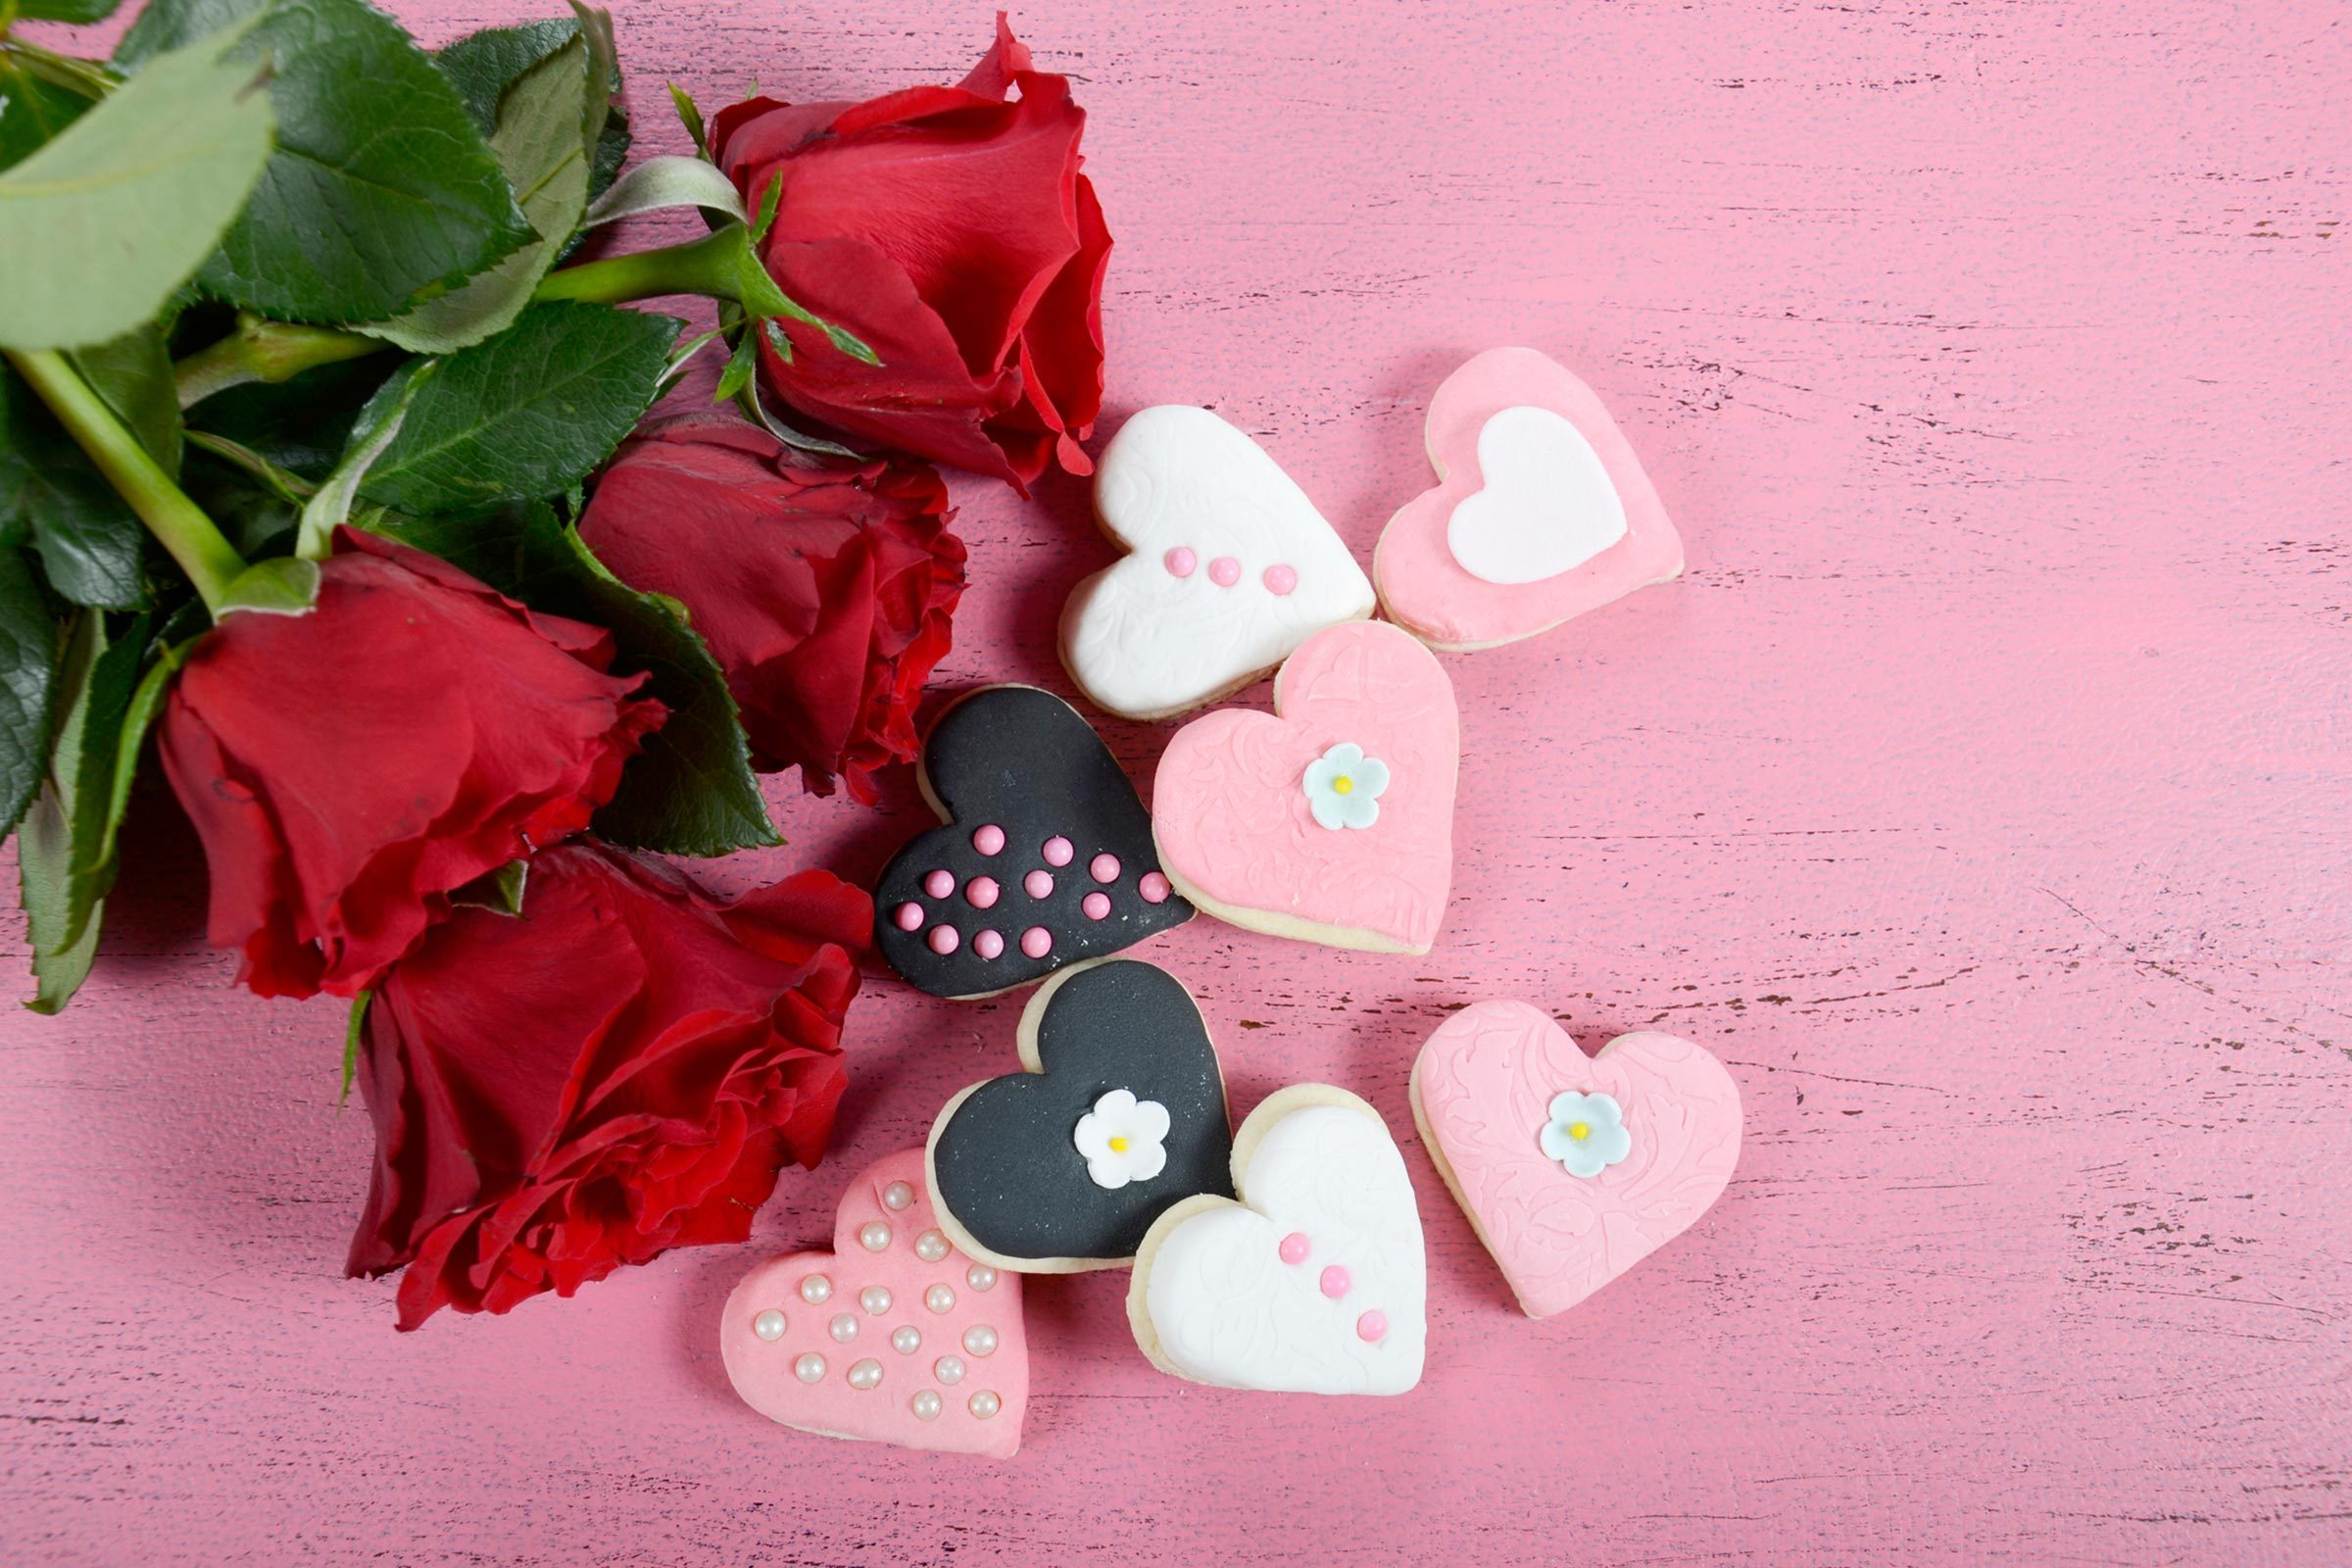 13-israel-this-is-how-people-celebrate-valentines-around-world